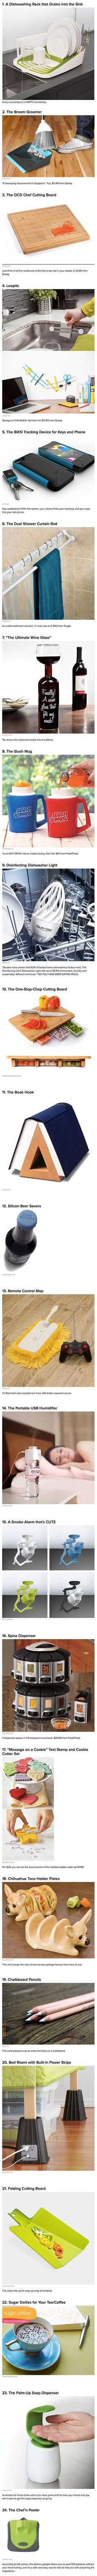 Cool inventions (Creative Kitchen Gadgets)